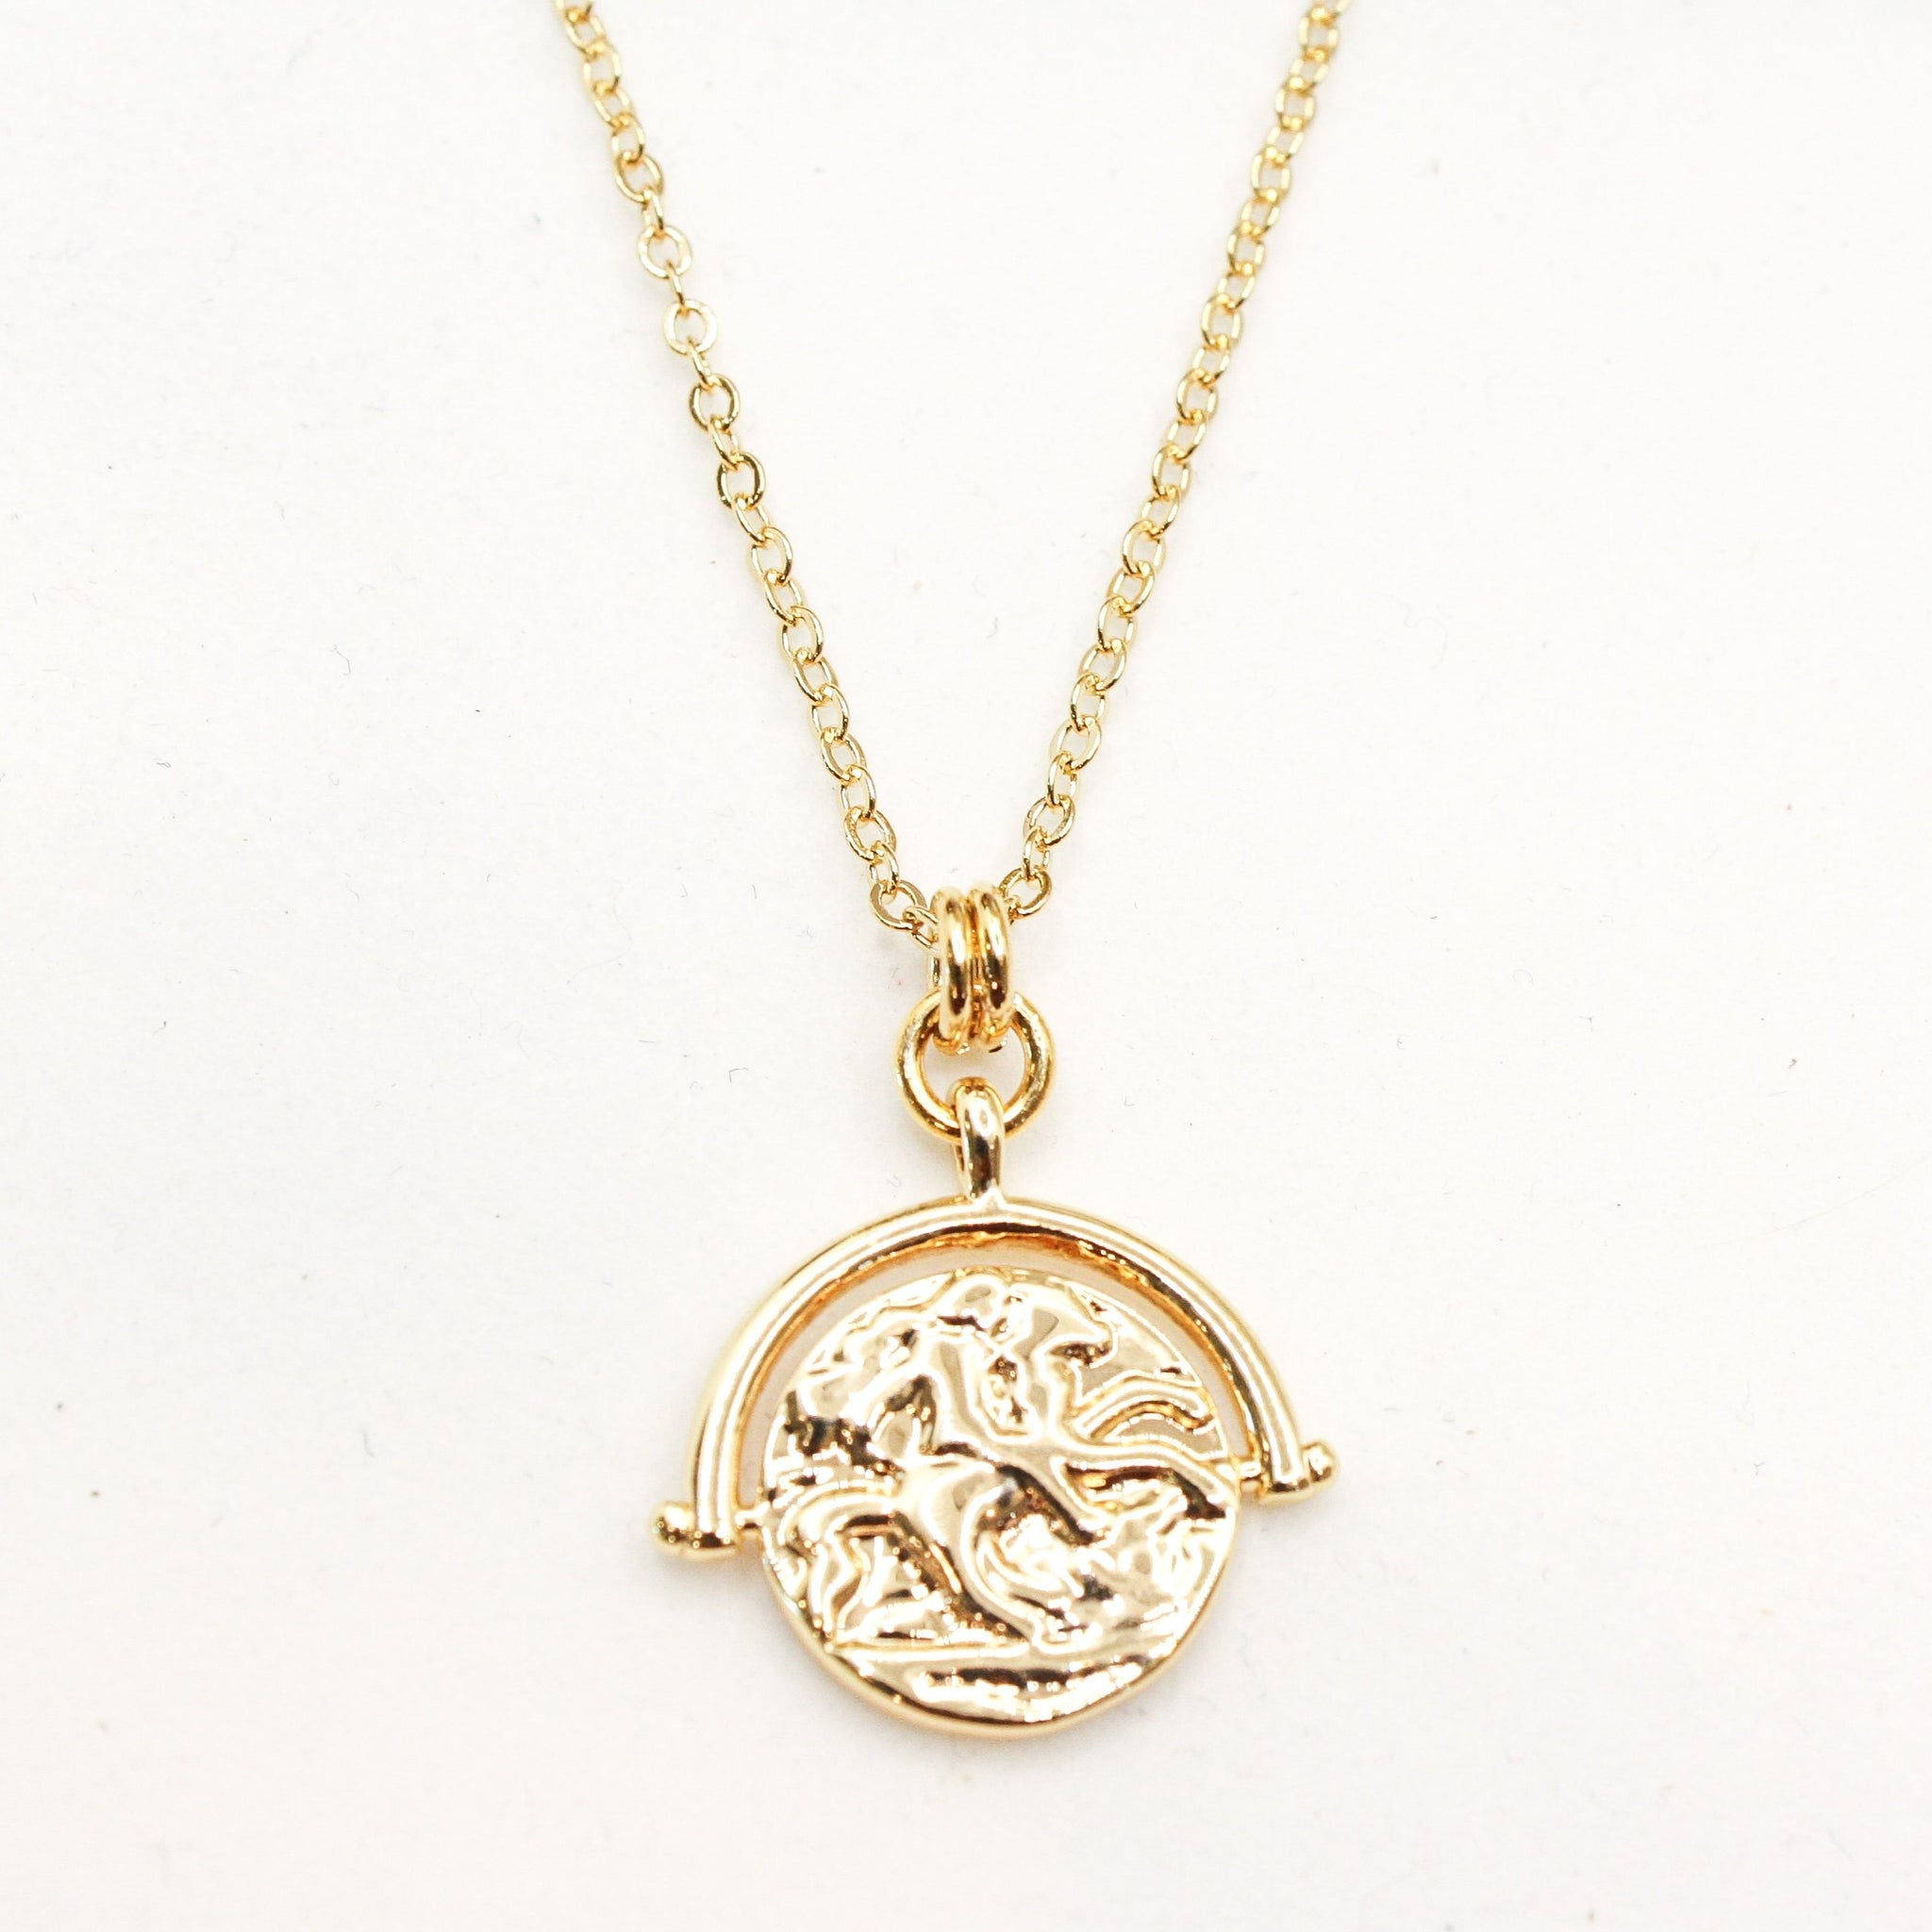 Medallion Necklace